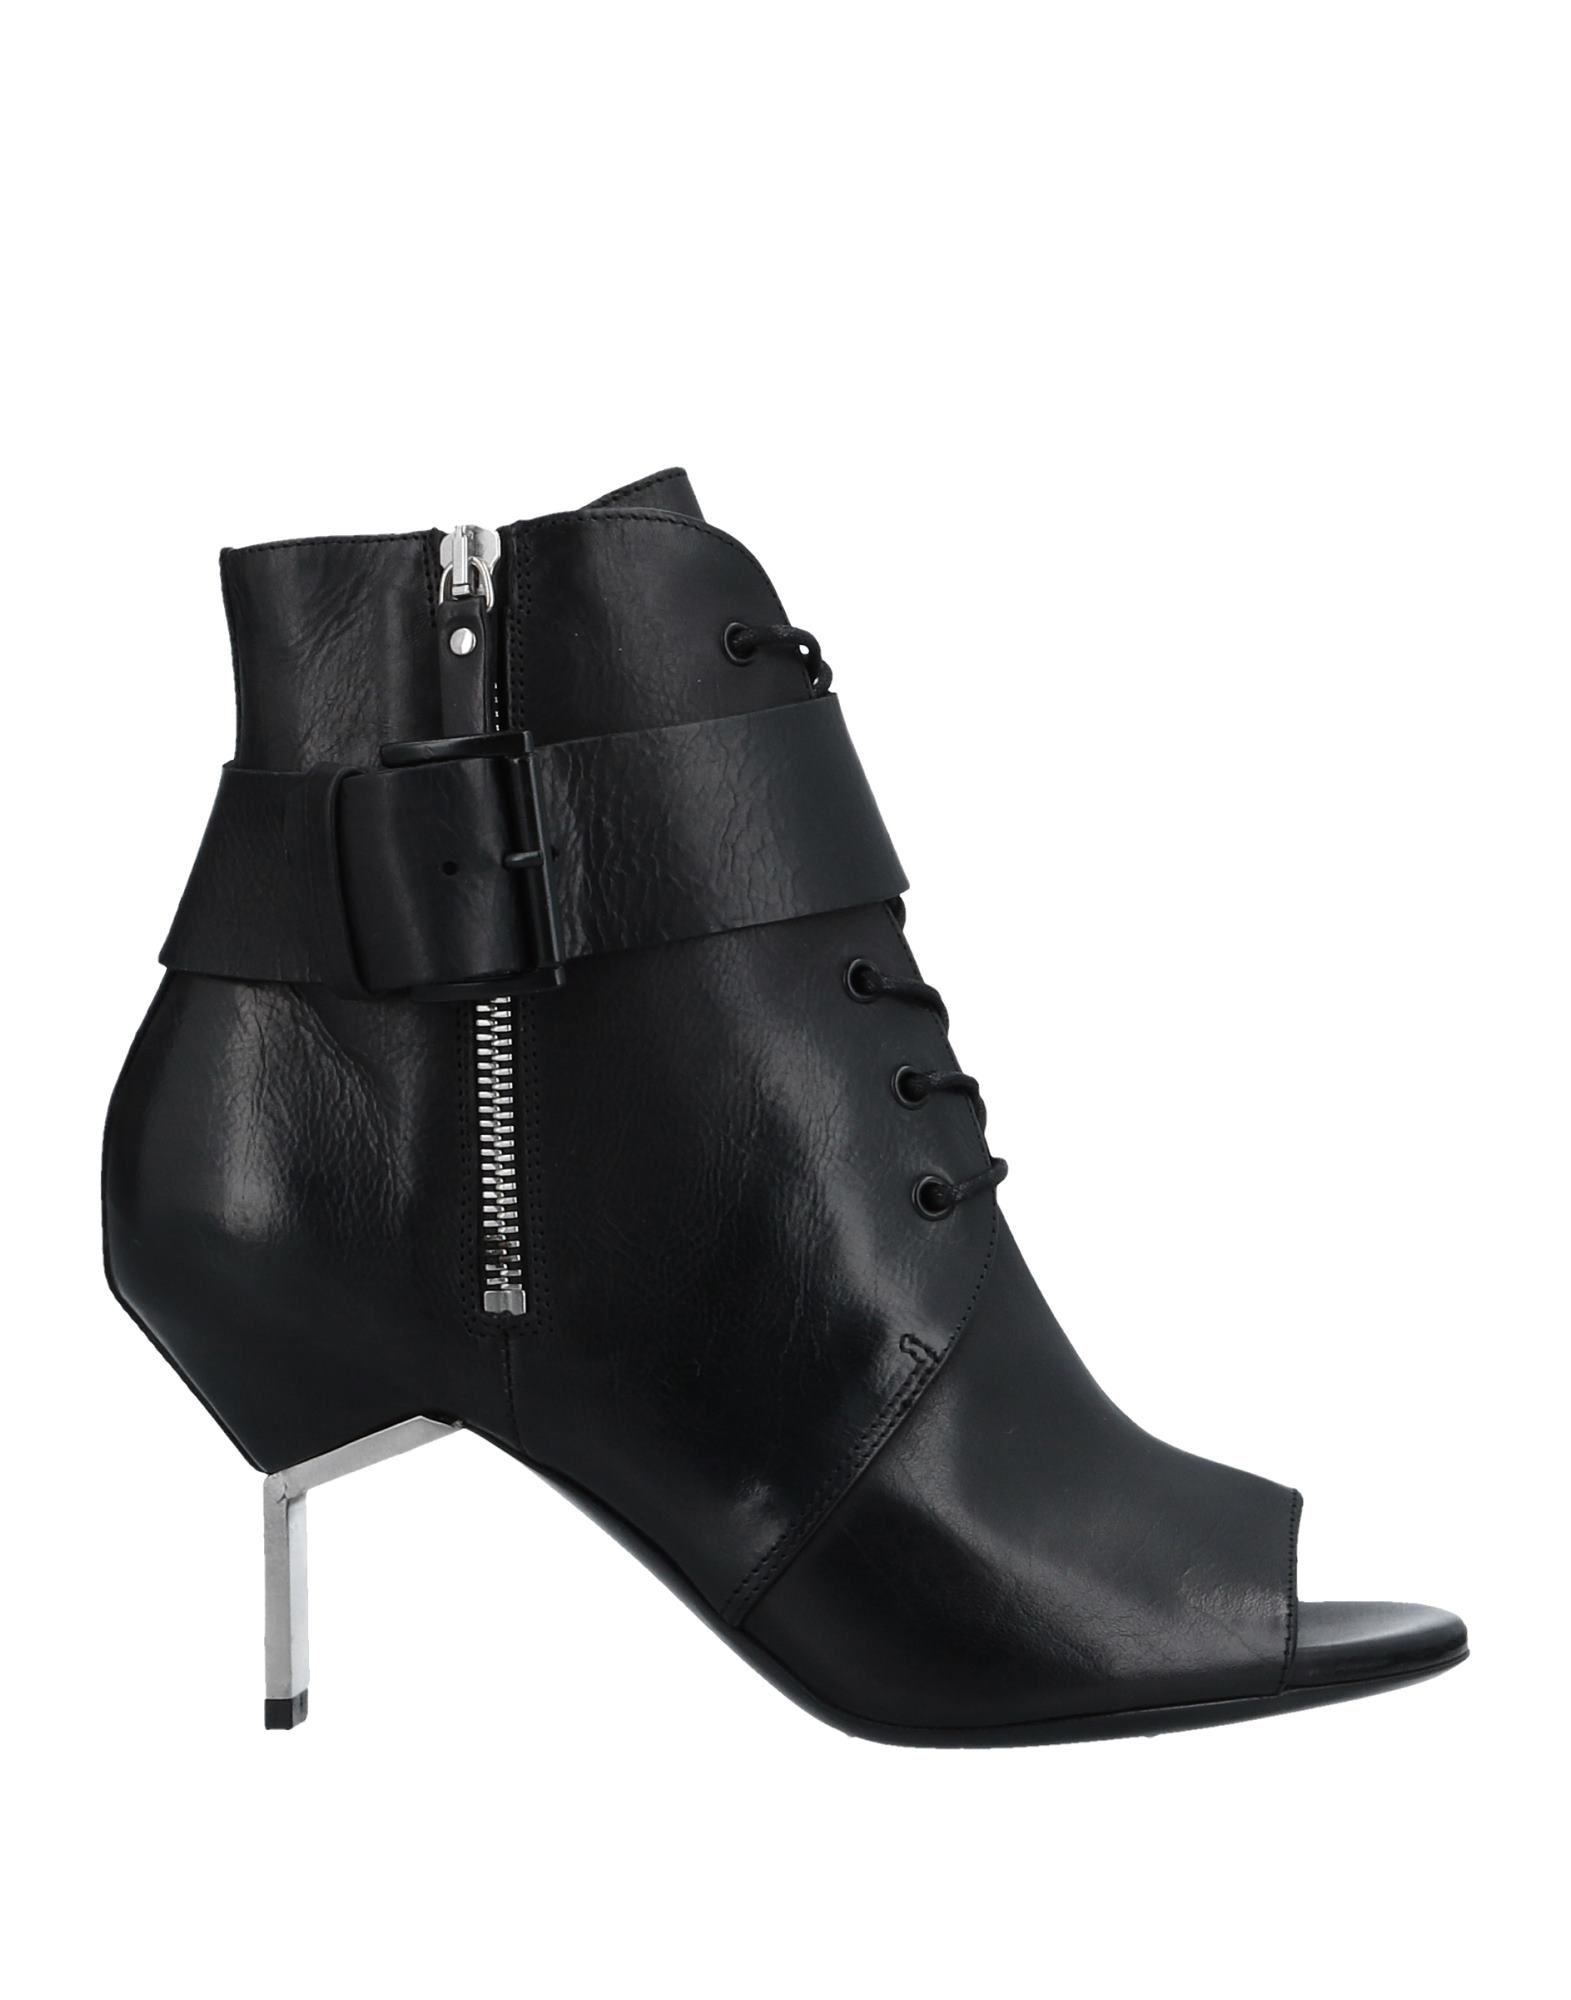 Vic Matiē Ankle Boot - Women Vic Matiē Ankle United Boots online on  United Ankle Kingdom - 11512995OS 1c2ac2